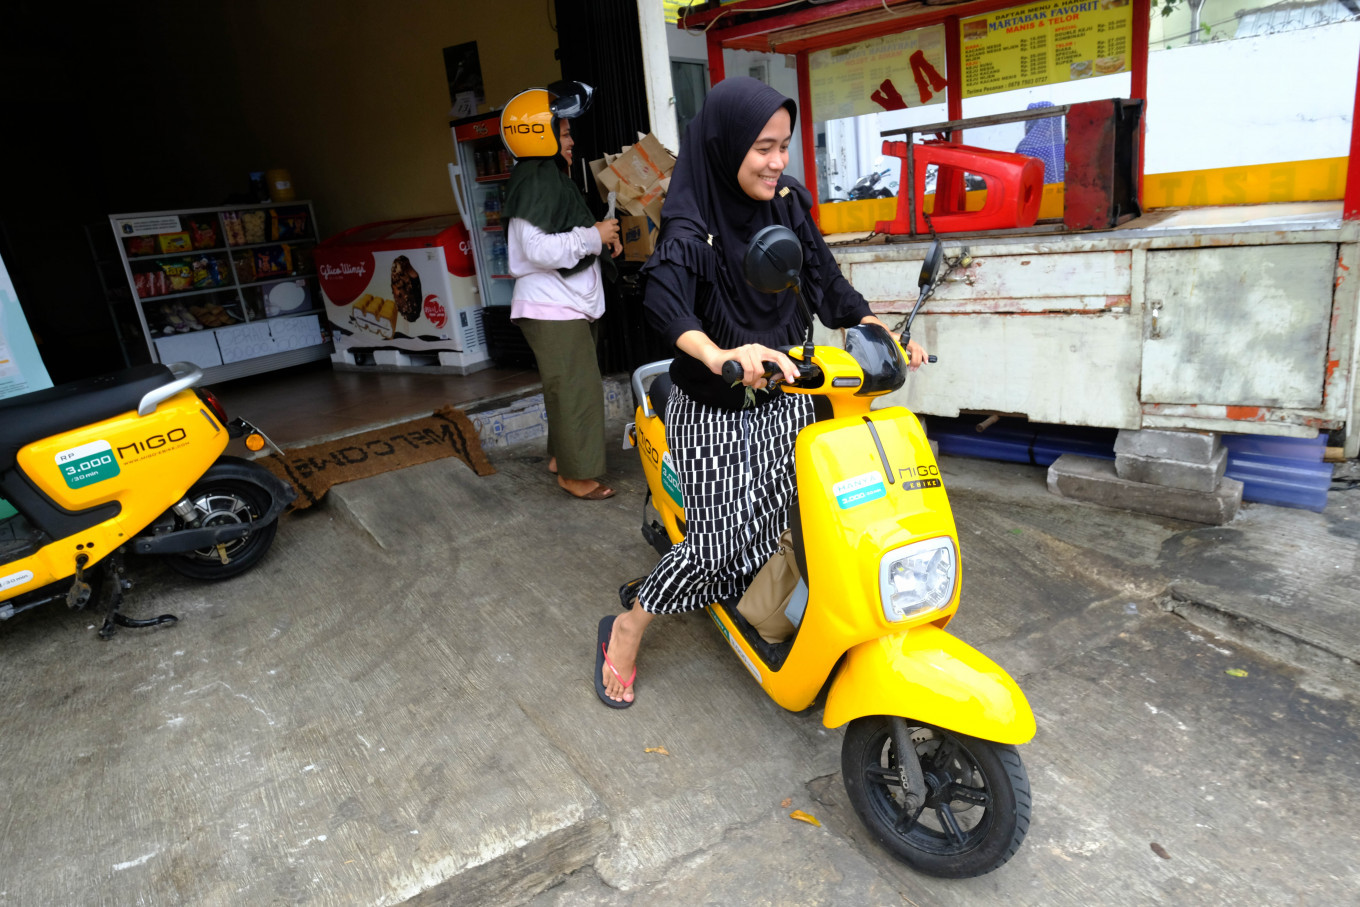 Consumers' concerns hamper electric vehicle adoption in Indonesia: Experts